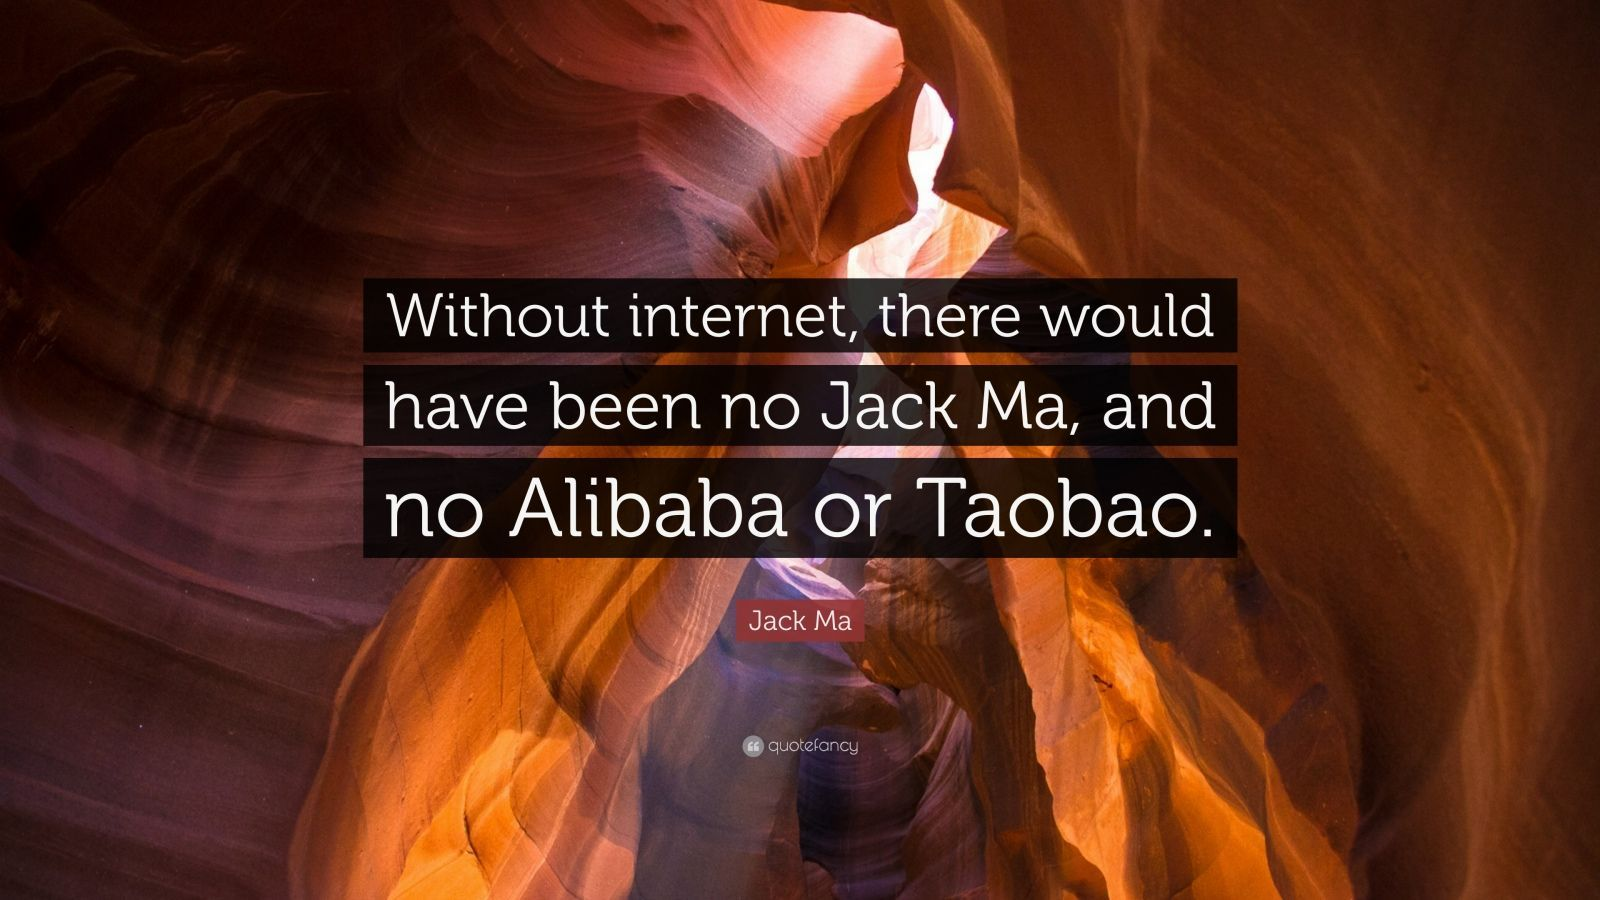 Jack Ma Quotes 90 Wallpapers Quotefancy Jack Ma Pinterest